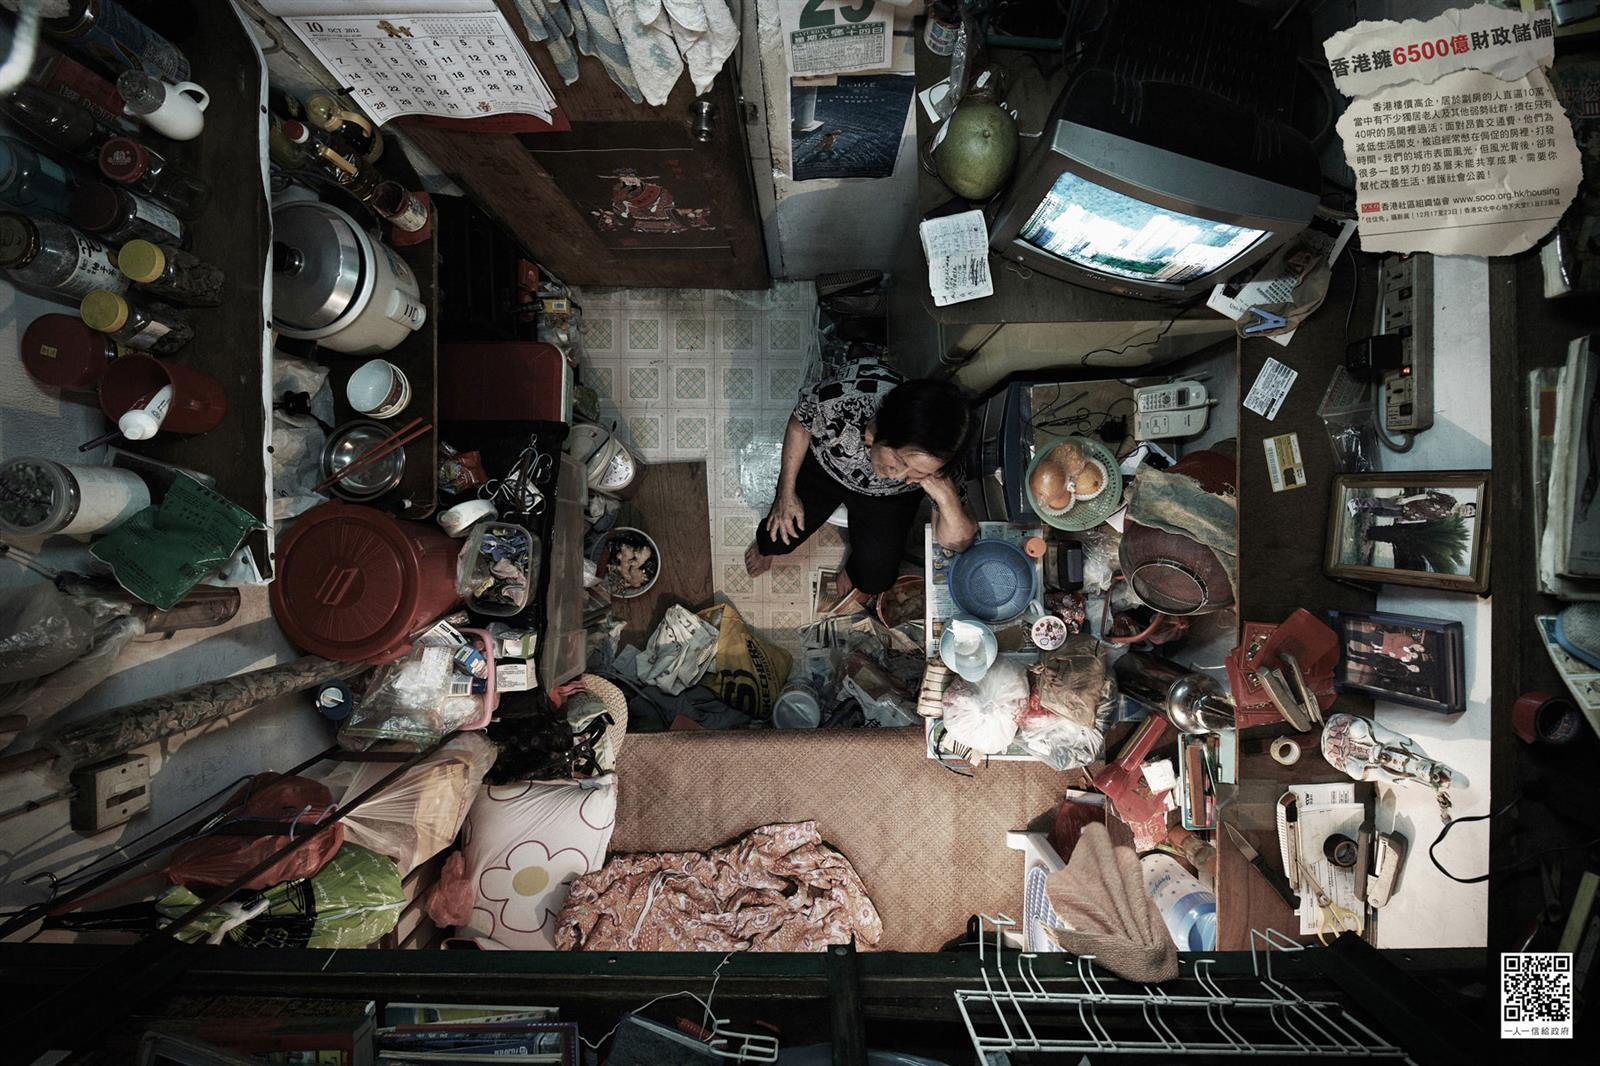 Crowded Apartment in Hong Kong (6)